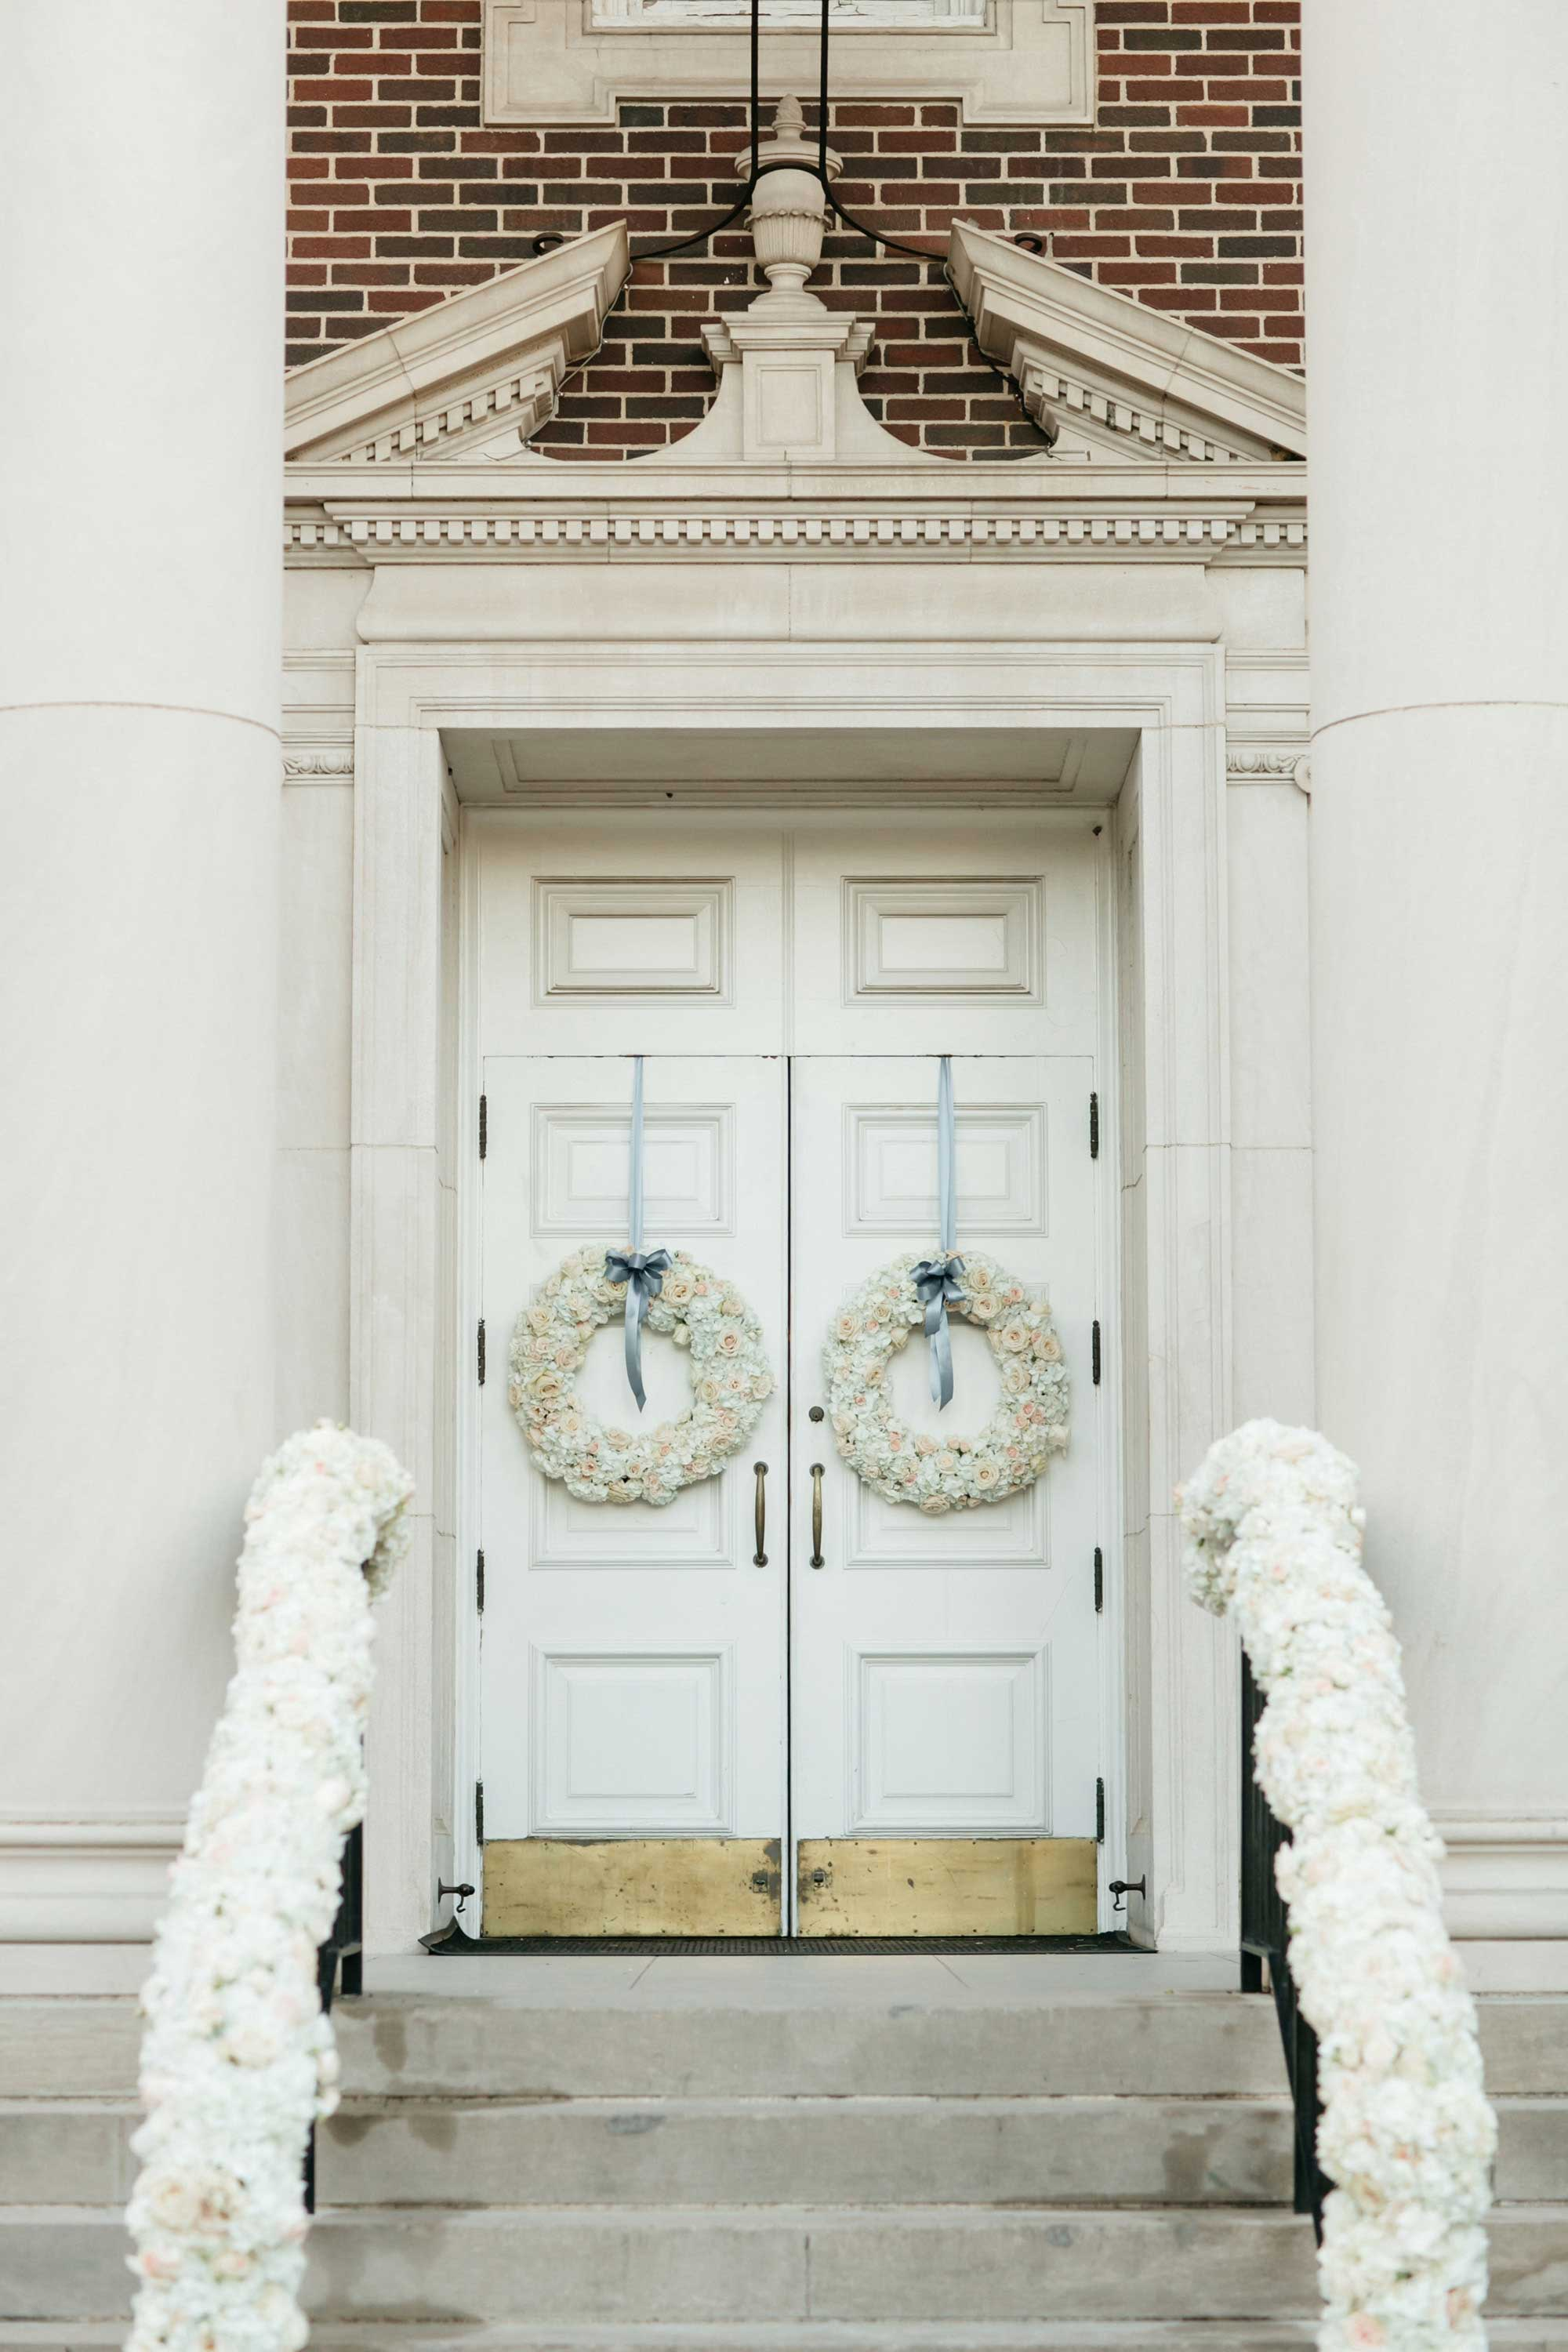 Wedding Ceremony Ideas: 13 Décor Ideas for a Church Wedding - Inside ...